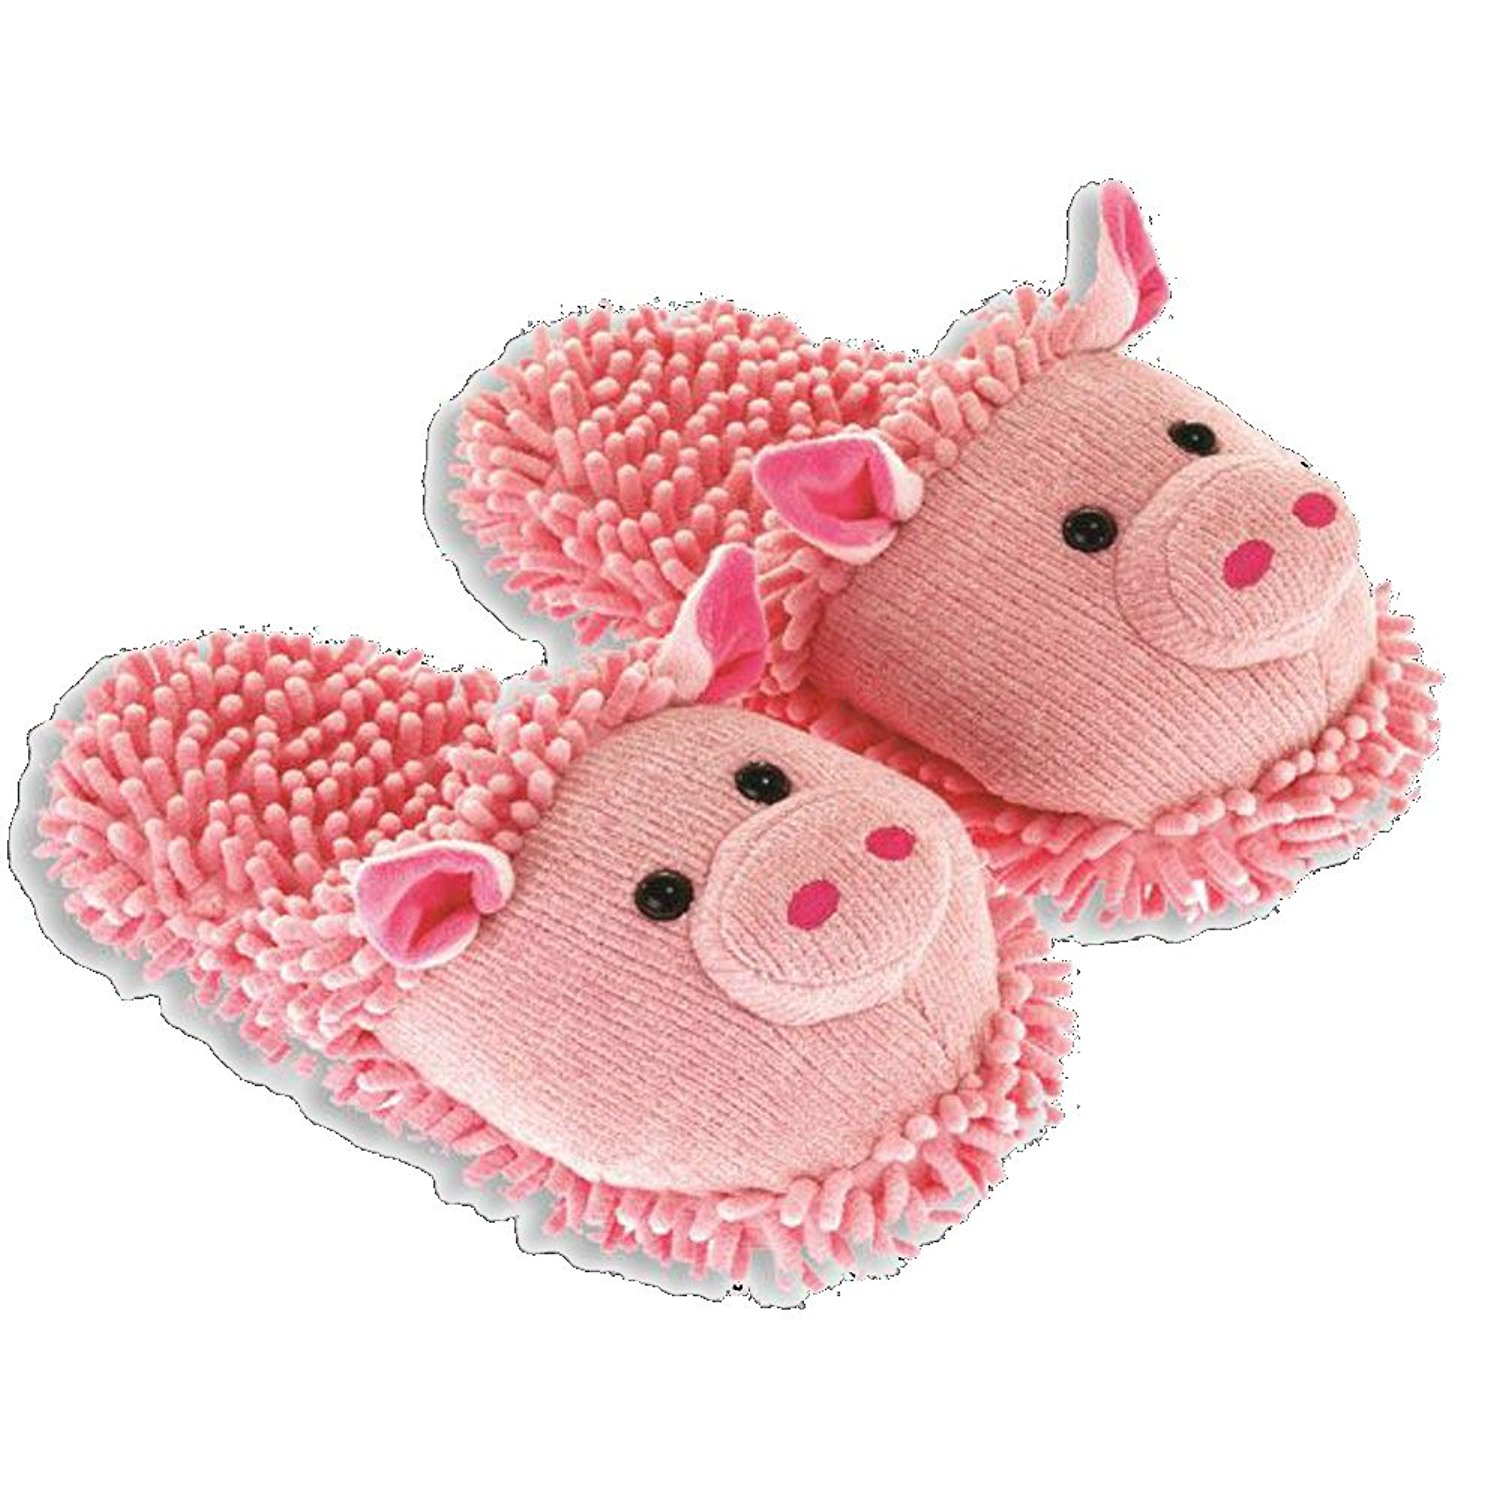 2a78c386ae6 Get Quotations · Women s Aroma Home Pink Pig Fuzzy Friends Slippers